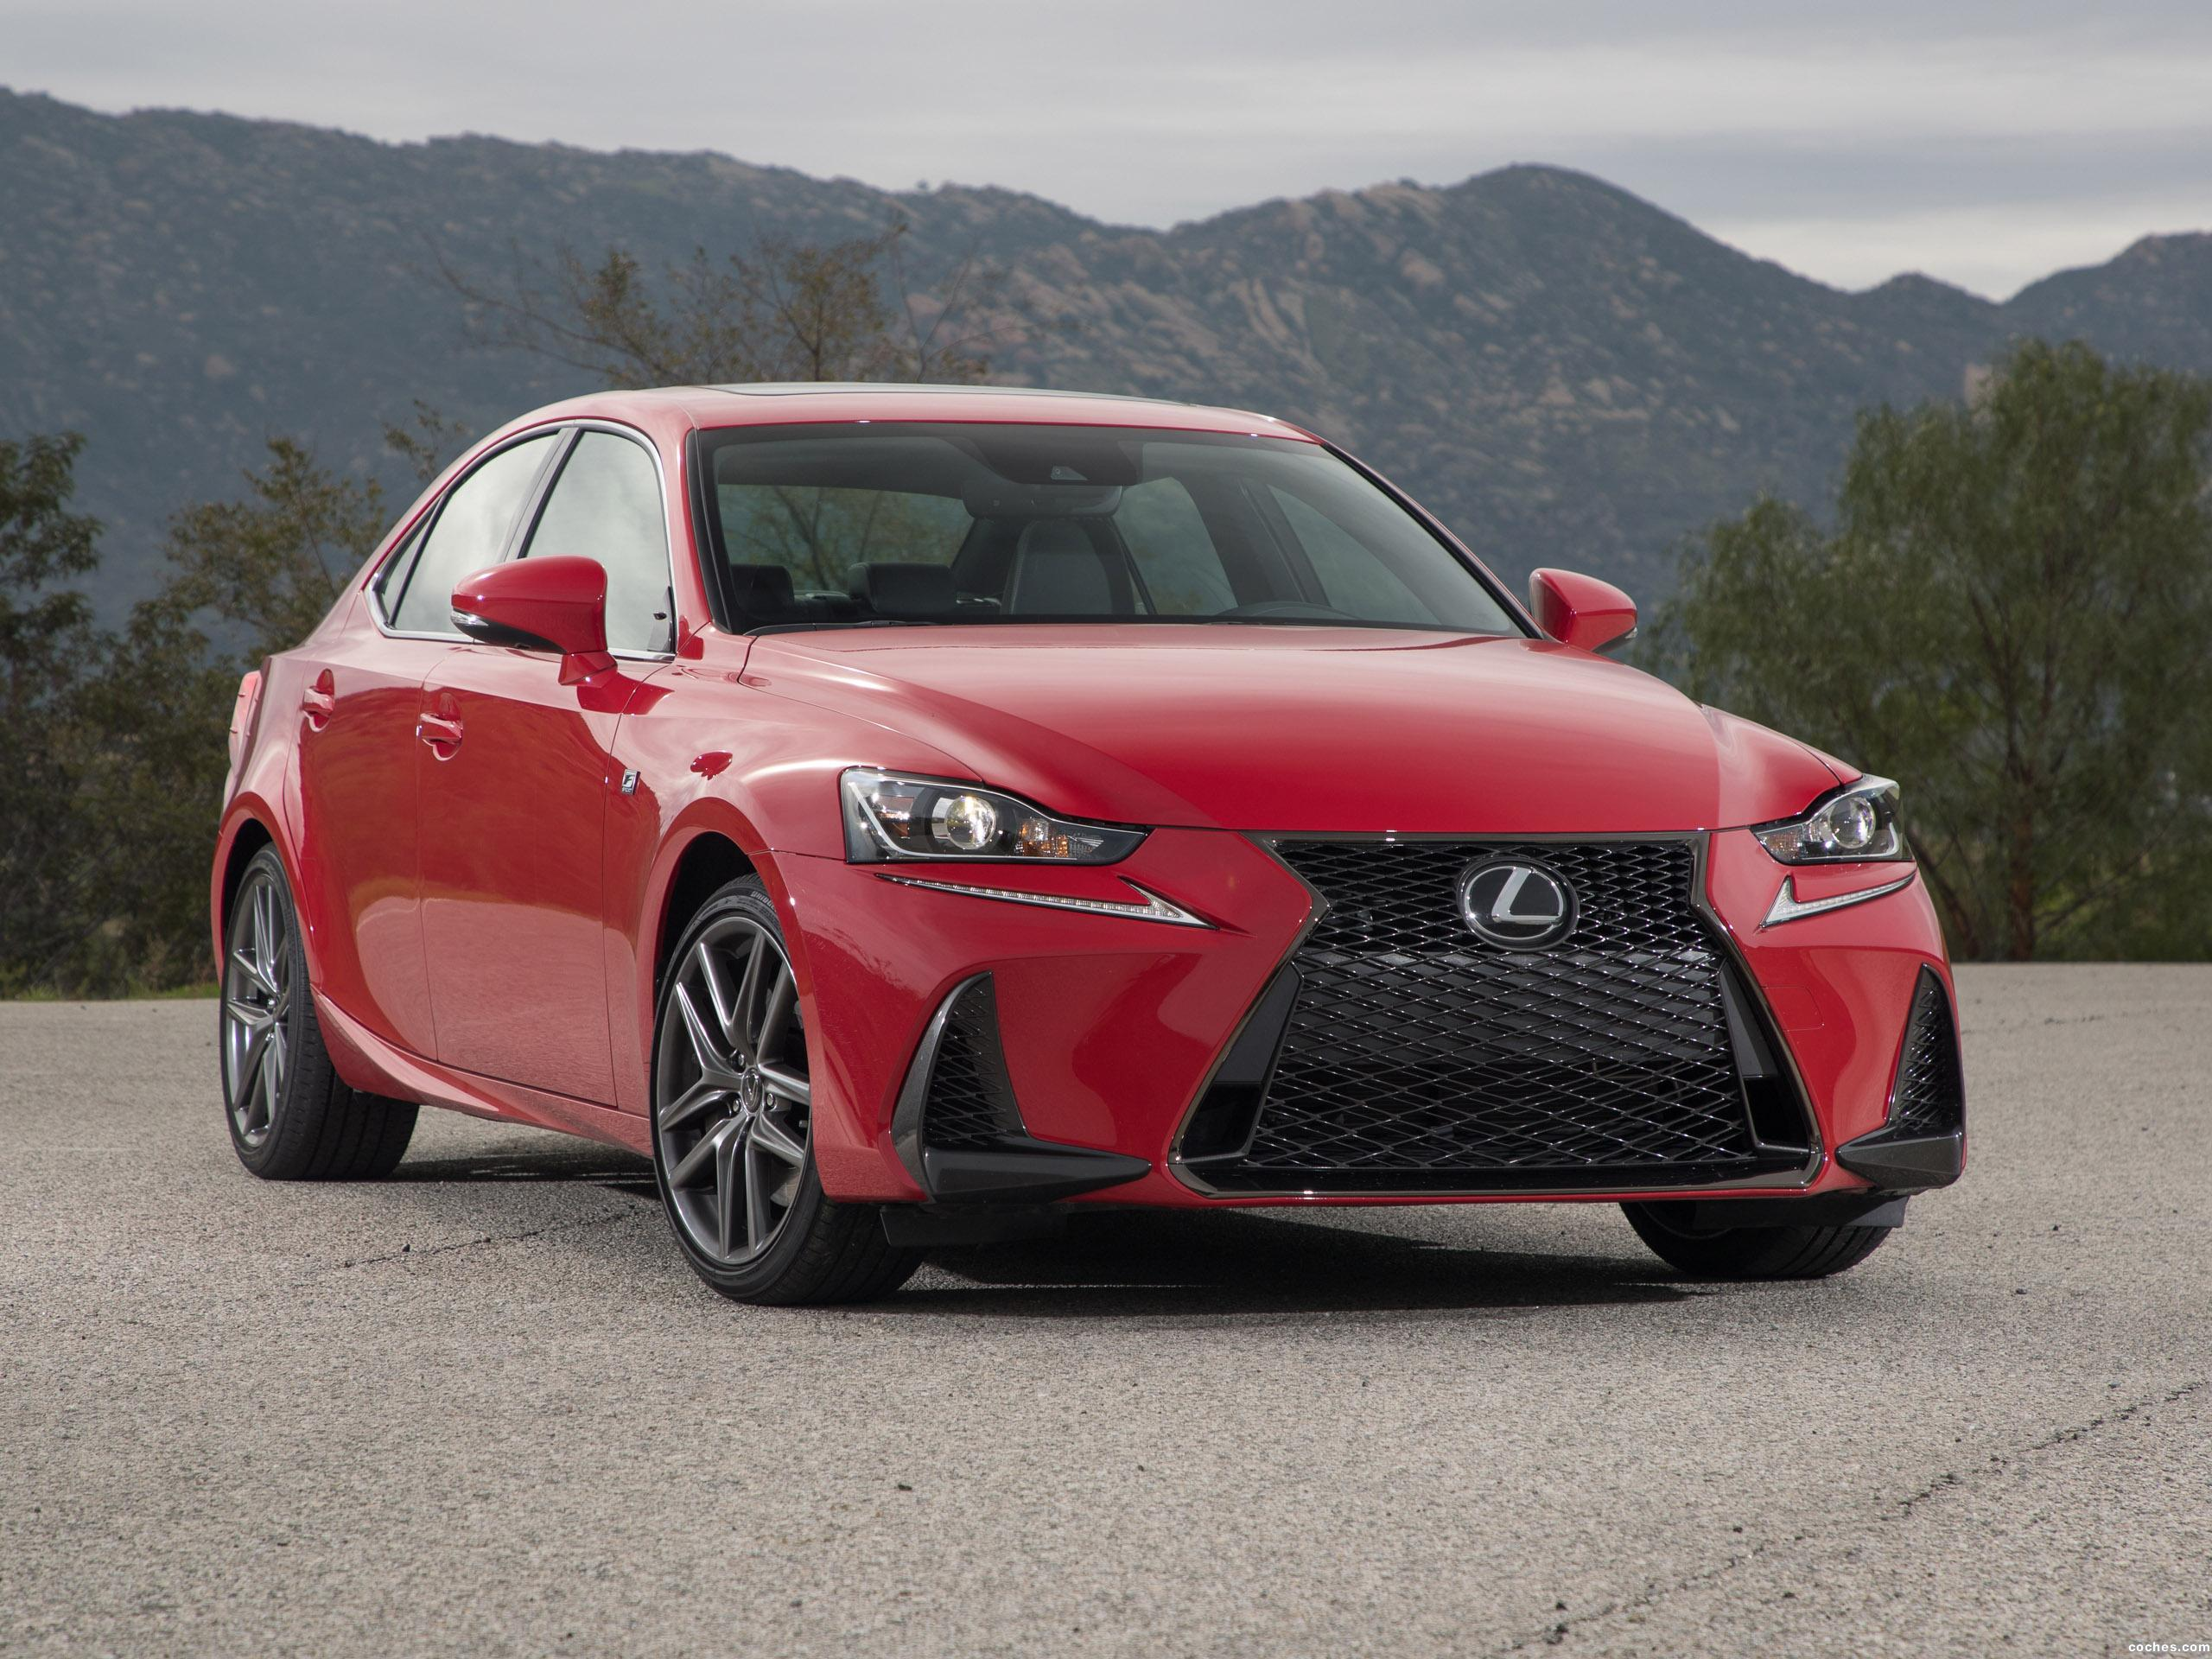 lexus_is-200t-f-sport-xe30-usa-2016_r19.jpg